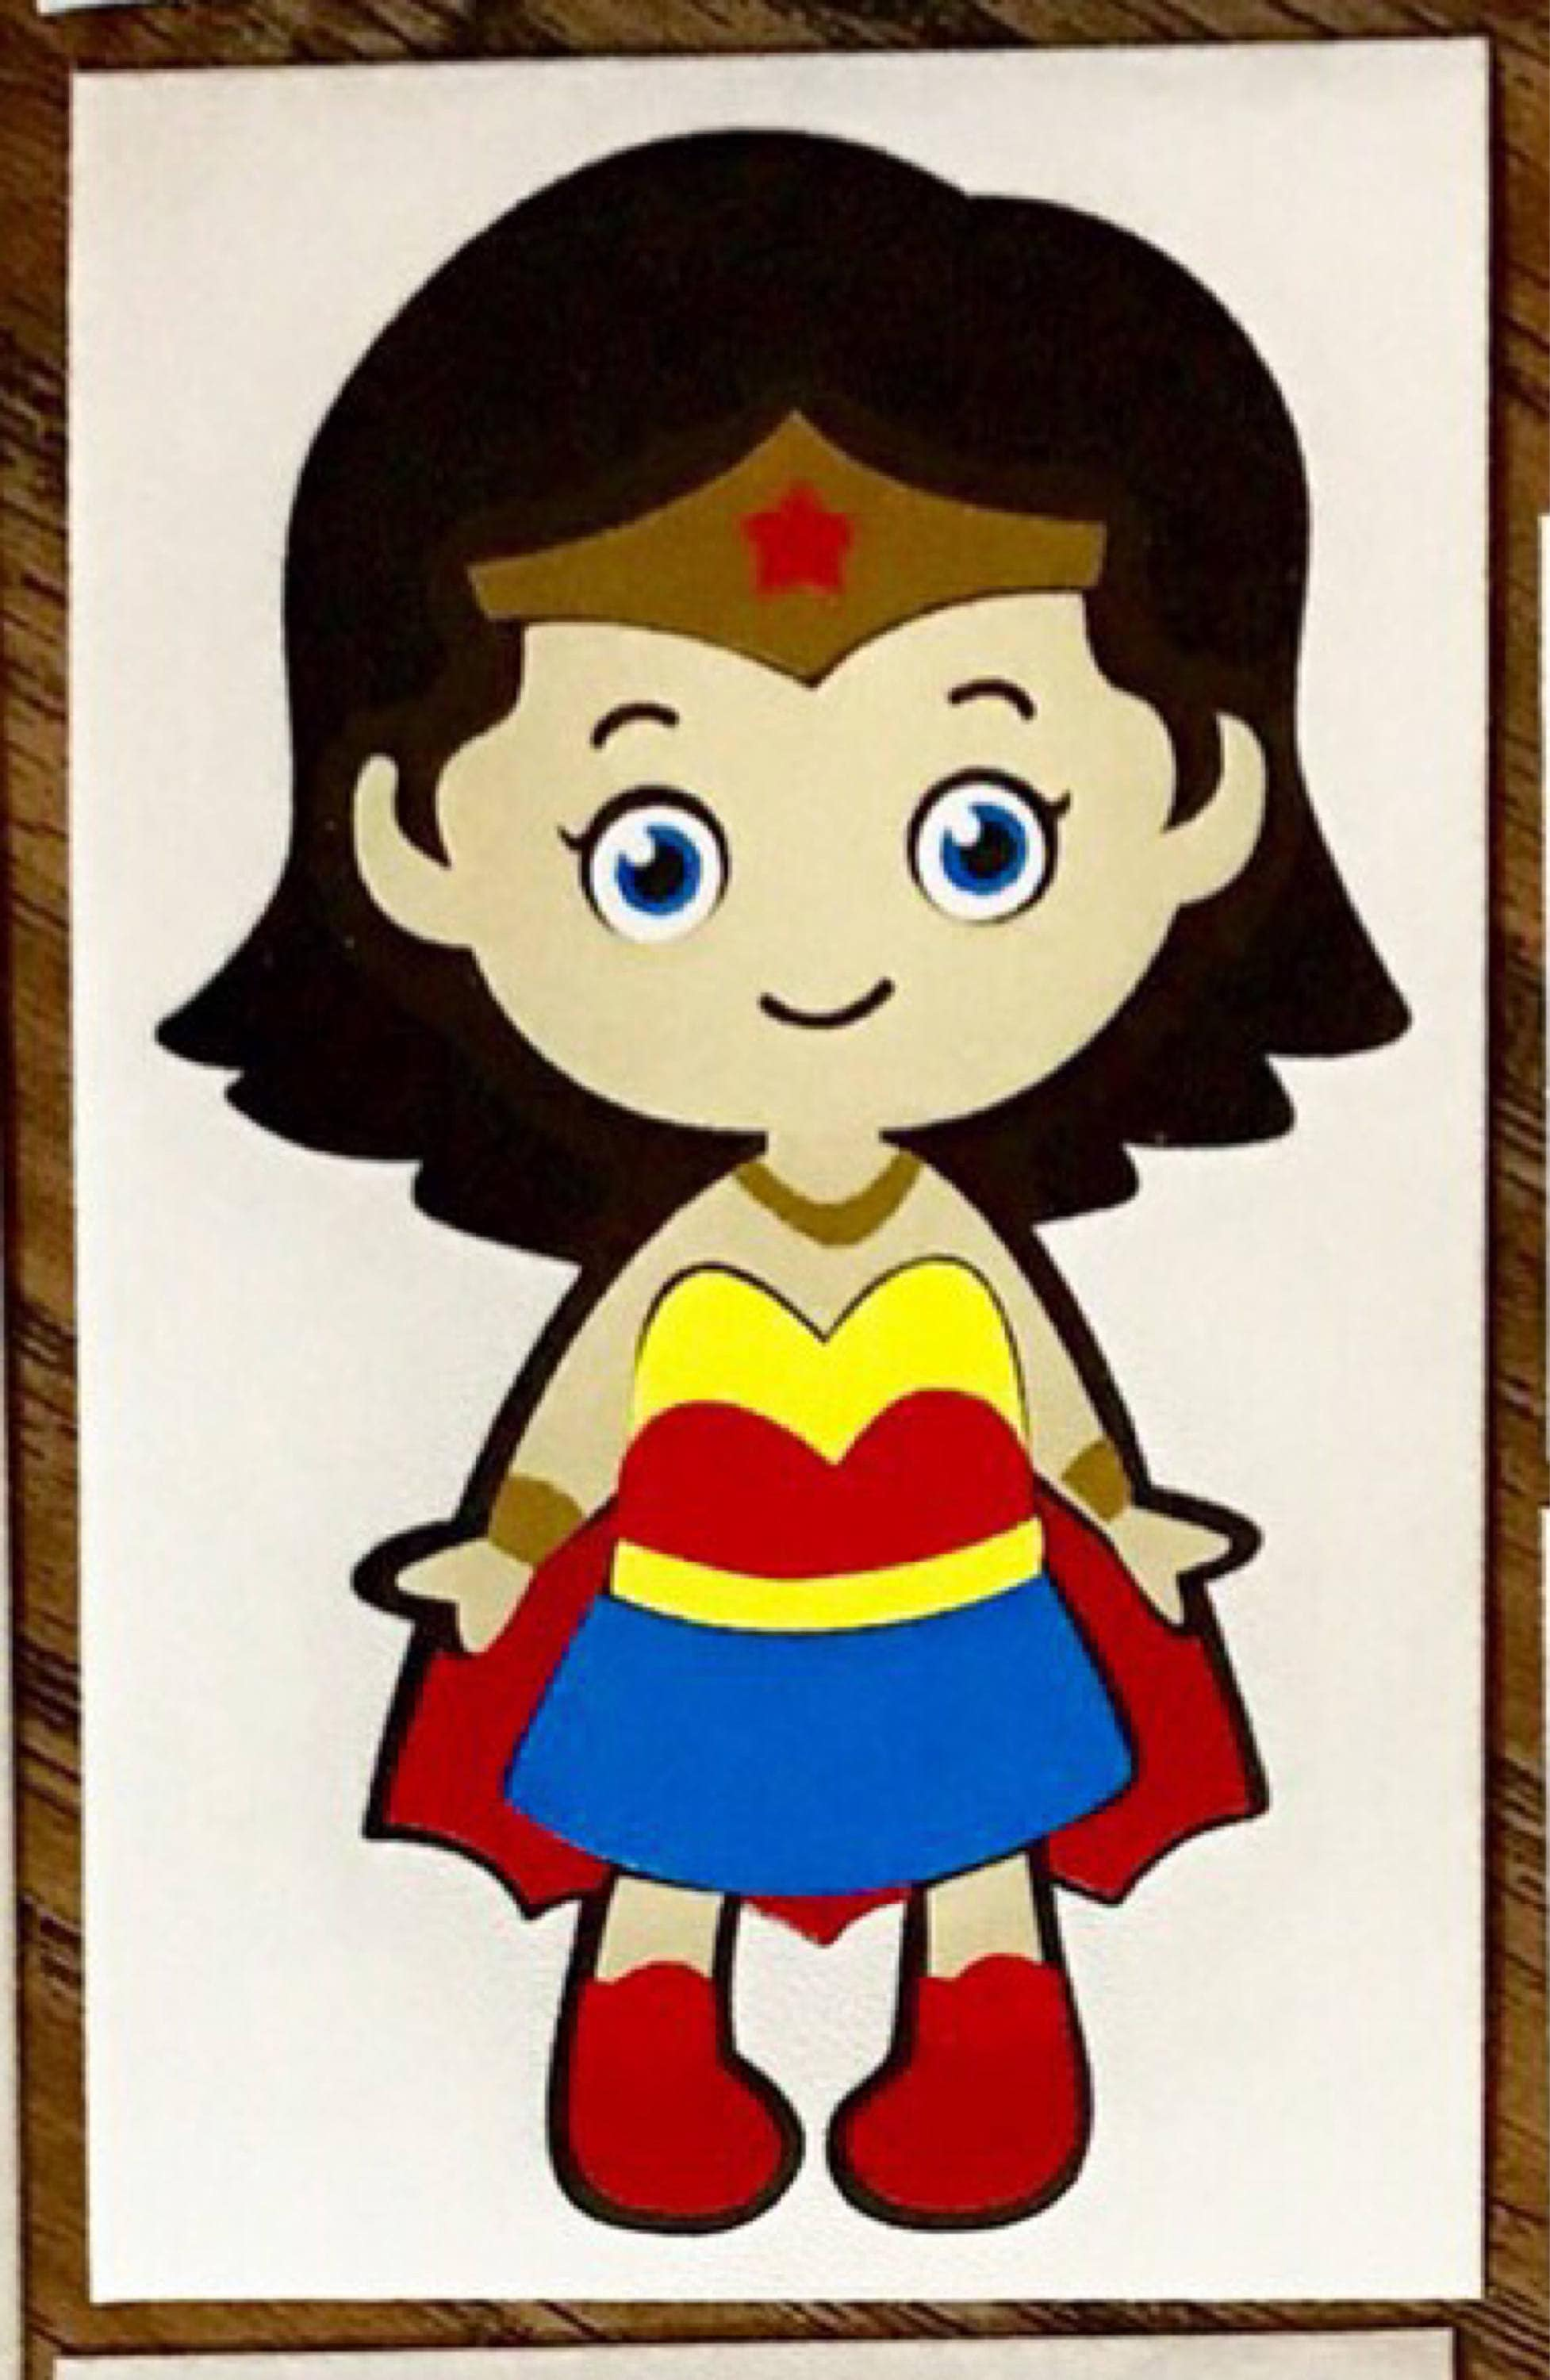 It's just a photo of Persnickety Cute Wonder Woman